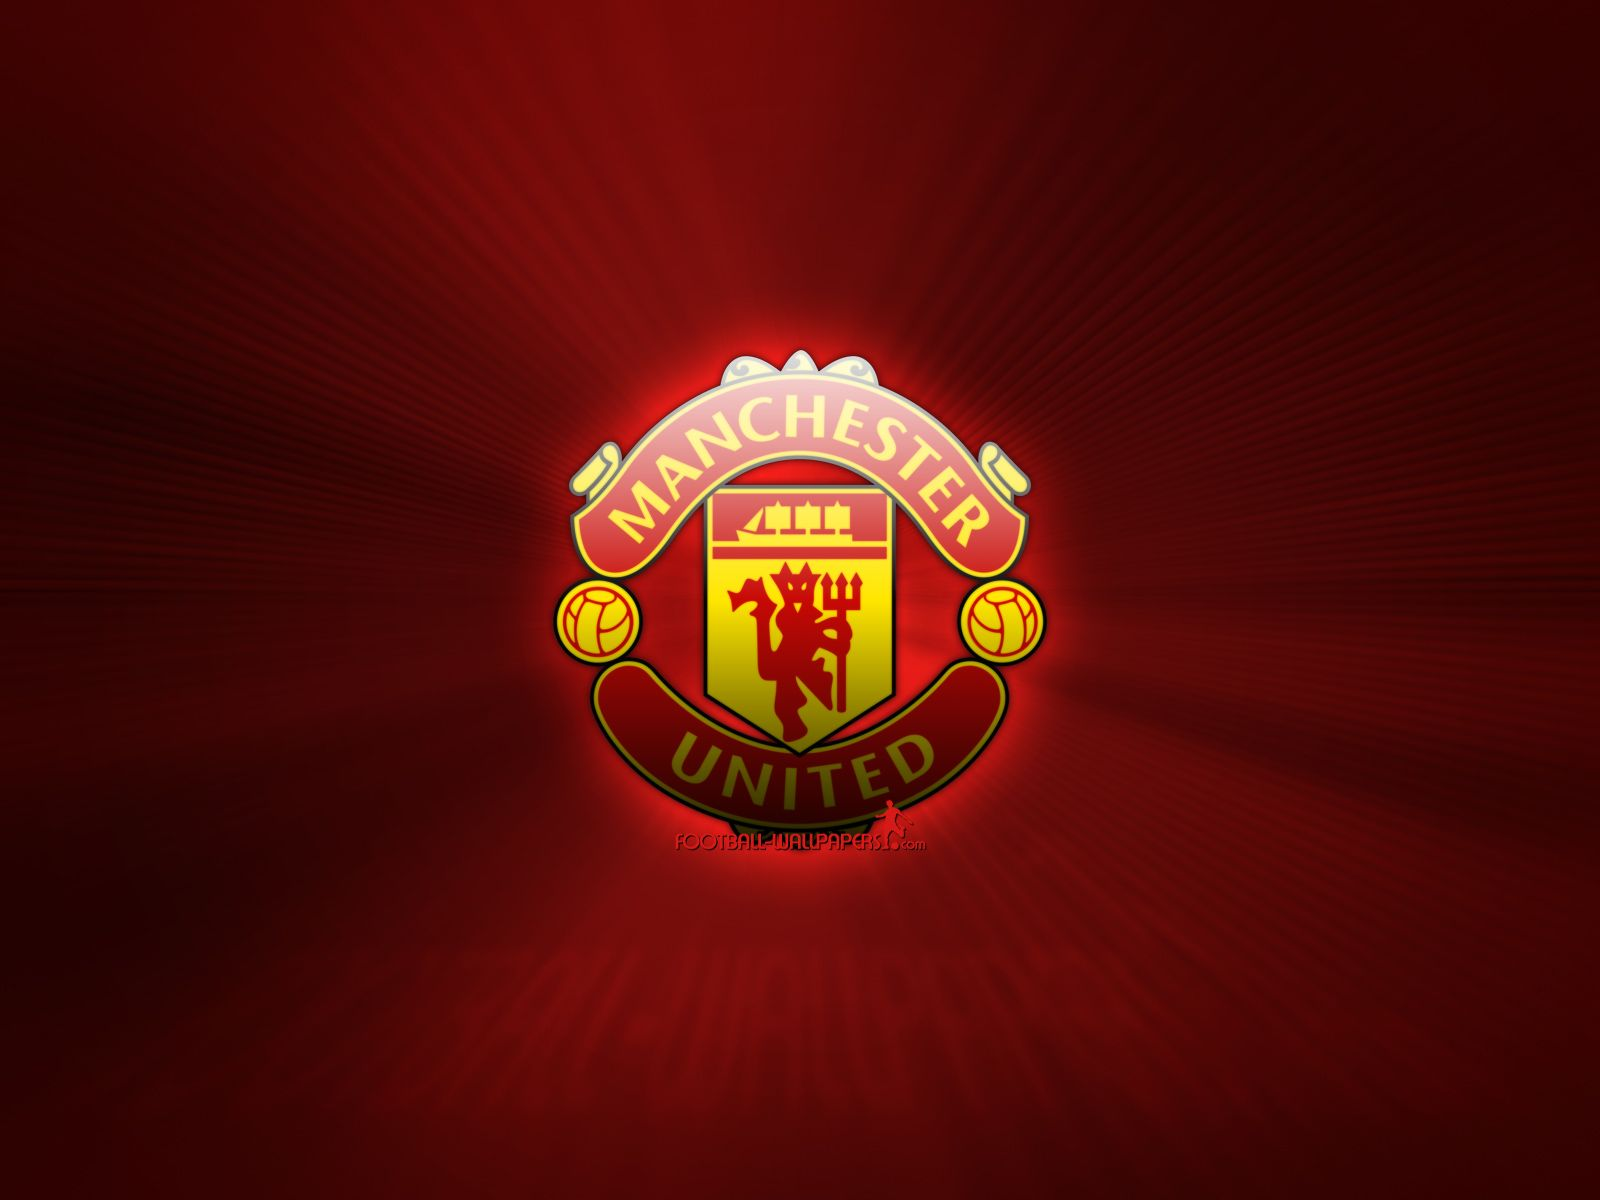 The Manchester United Third Strip Is All Blue Out Of Respect To The Kit Used In The 1968 E Manchester United Wallpaper Manchester United Logo Manchester United